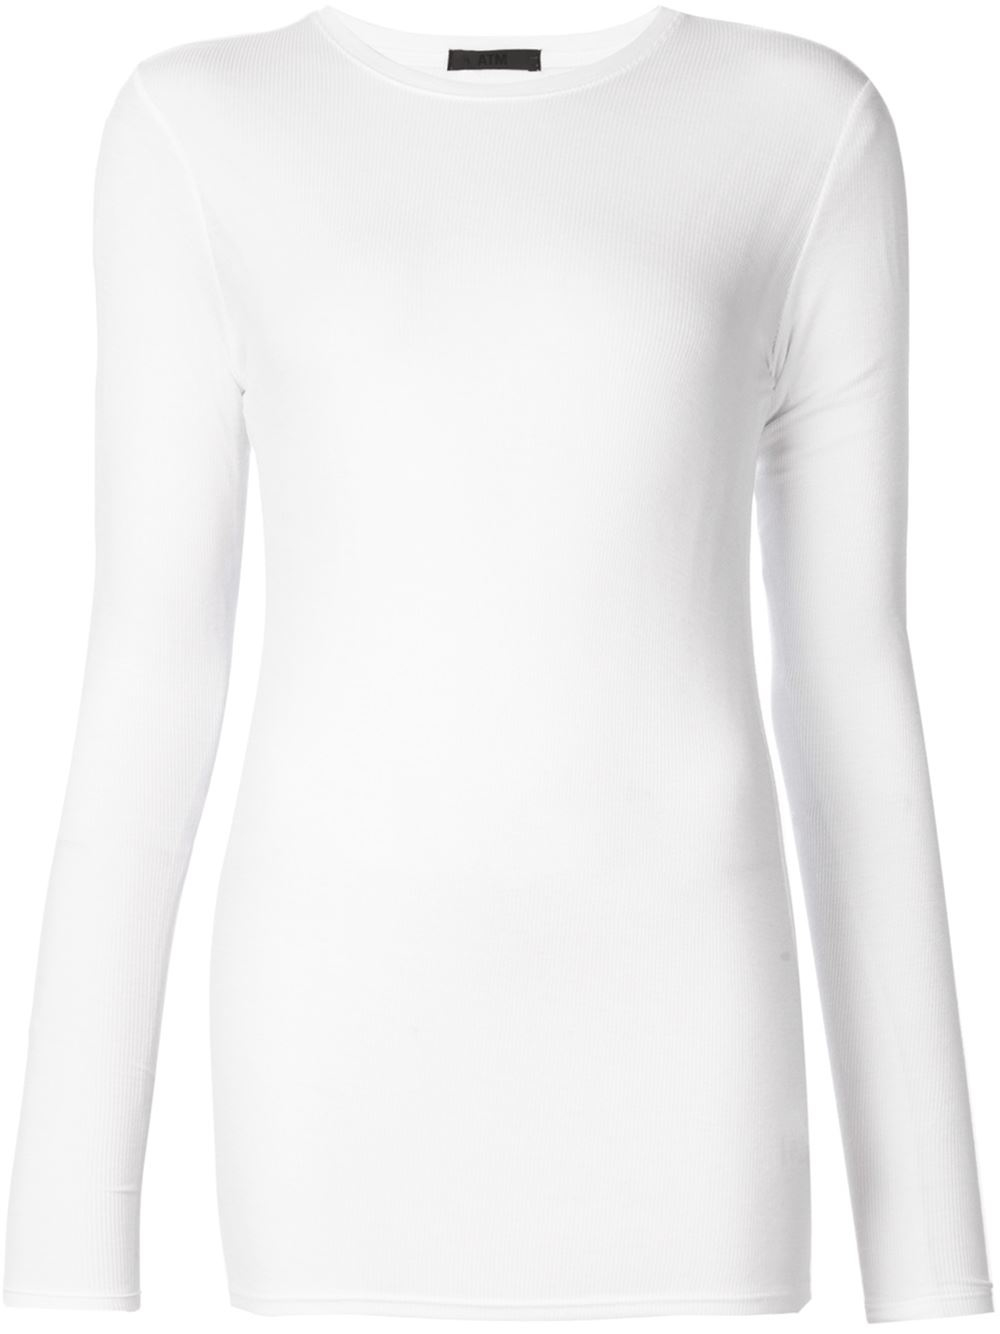 Atm ribbed long sleeve t shirt in white save 40 lyst for Ribbed long sleeve shirt